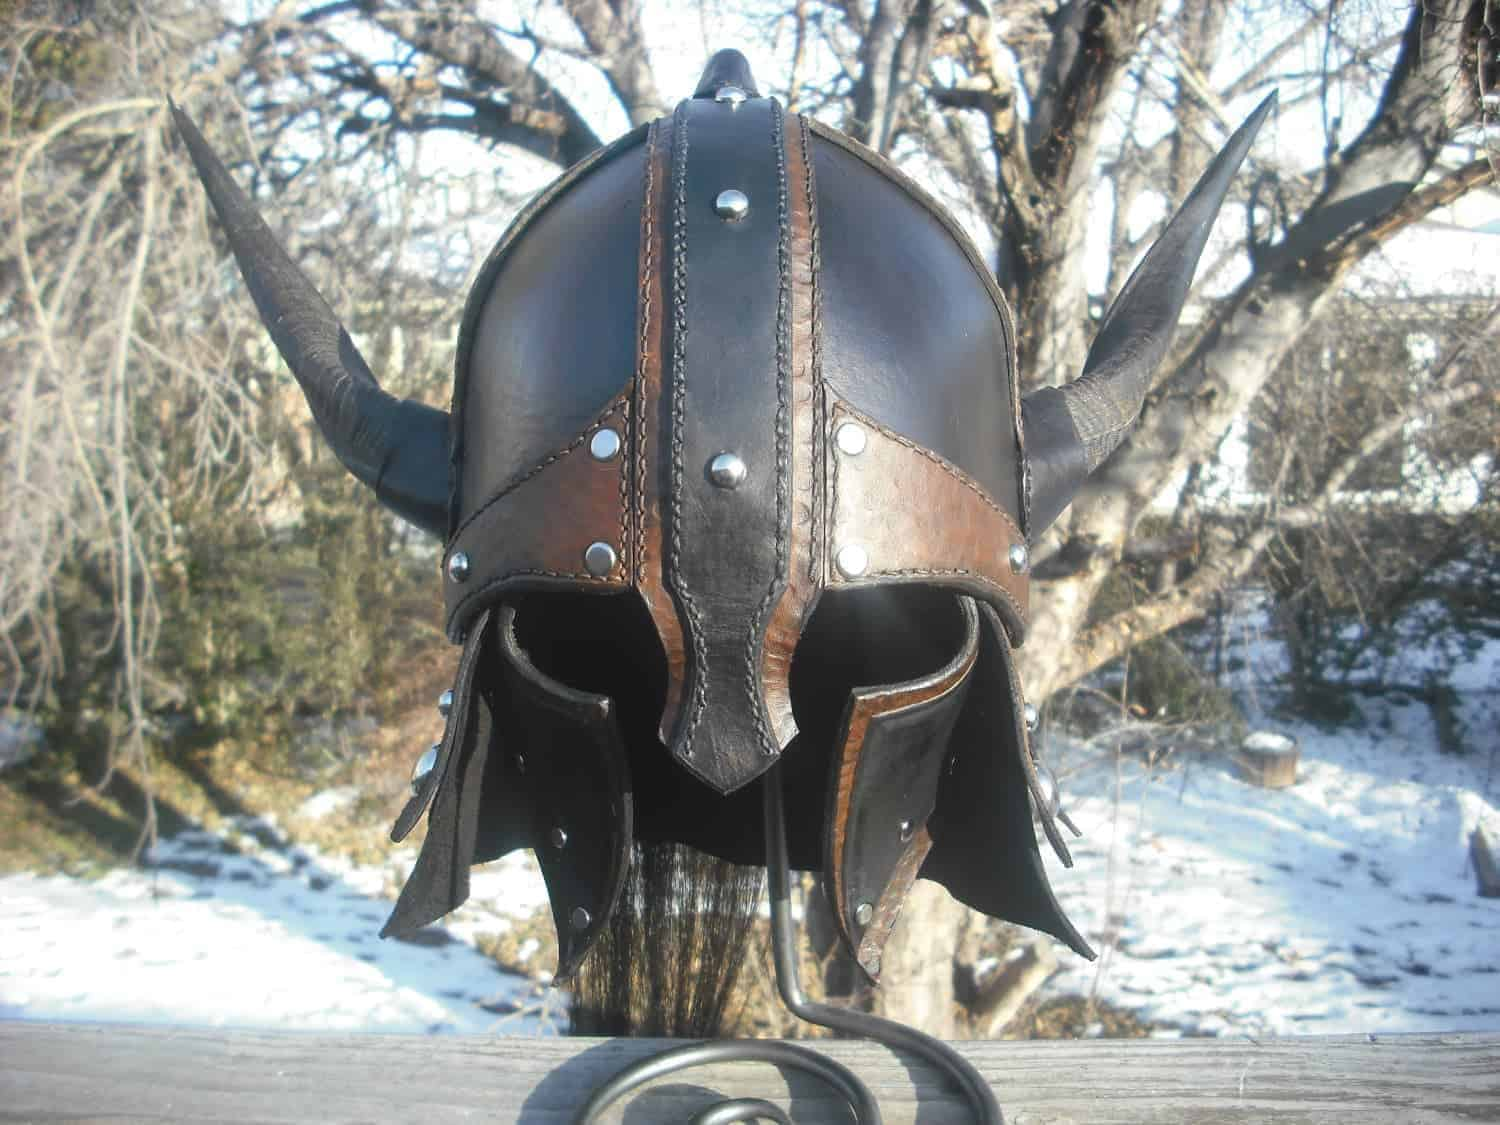 Etsy.com (The Stereotypical Viking Helmet look)